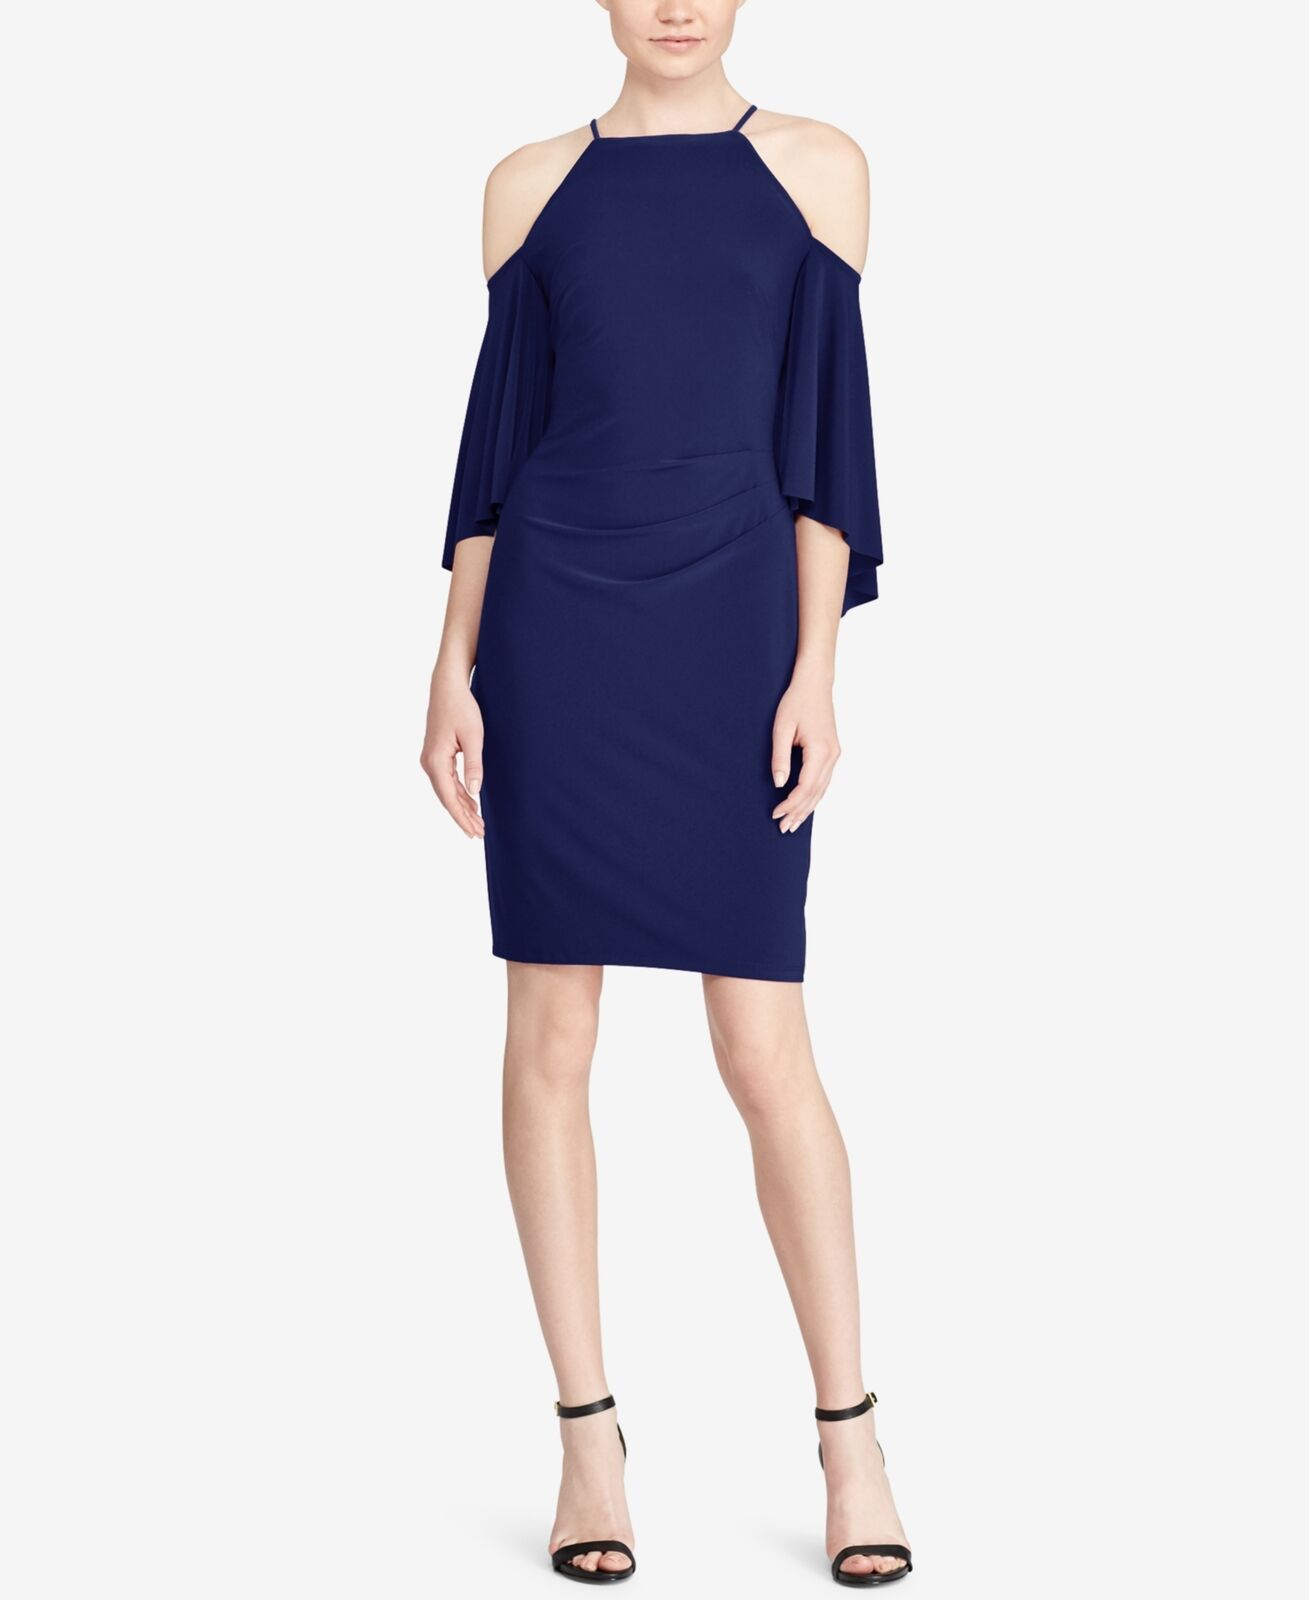 Ralph Lauren (N8224-72) Bell-Sleeve Cold-Shoulder Jersey Dress Blau Sz 16